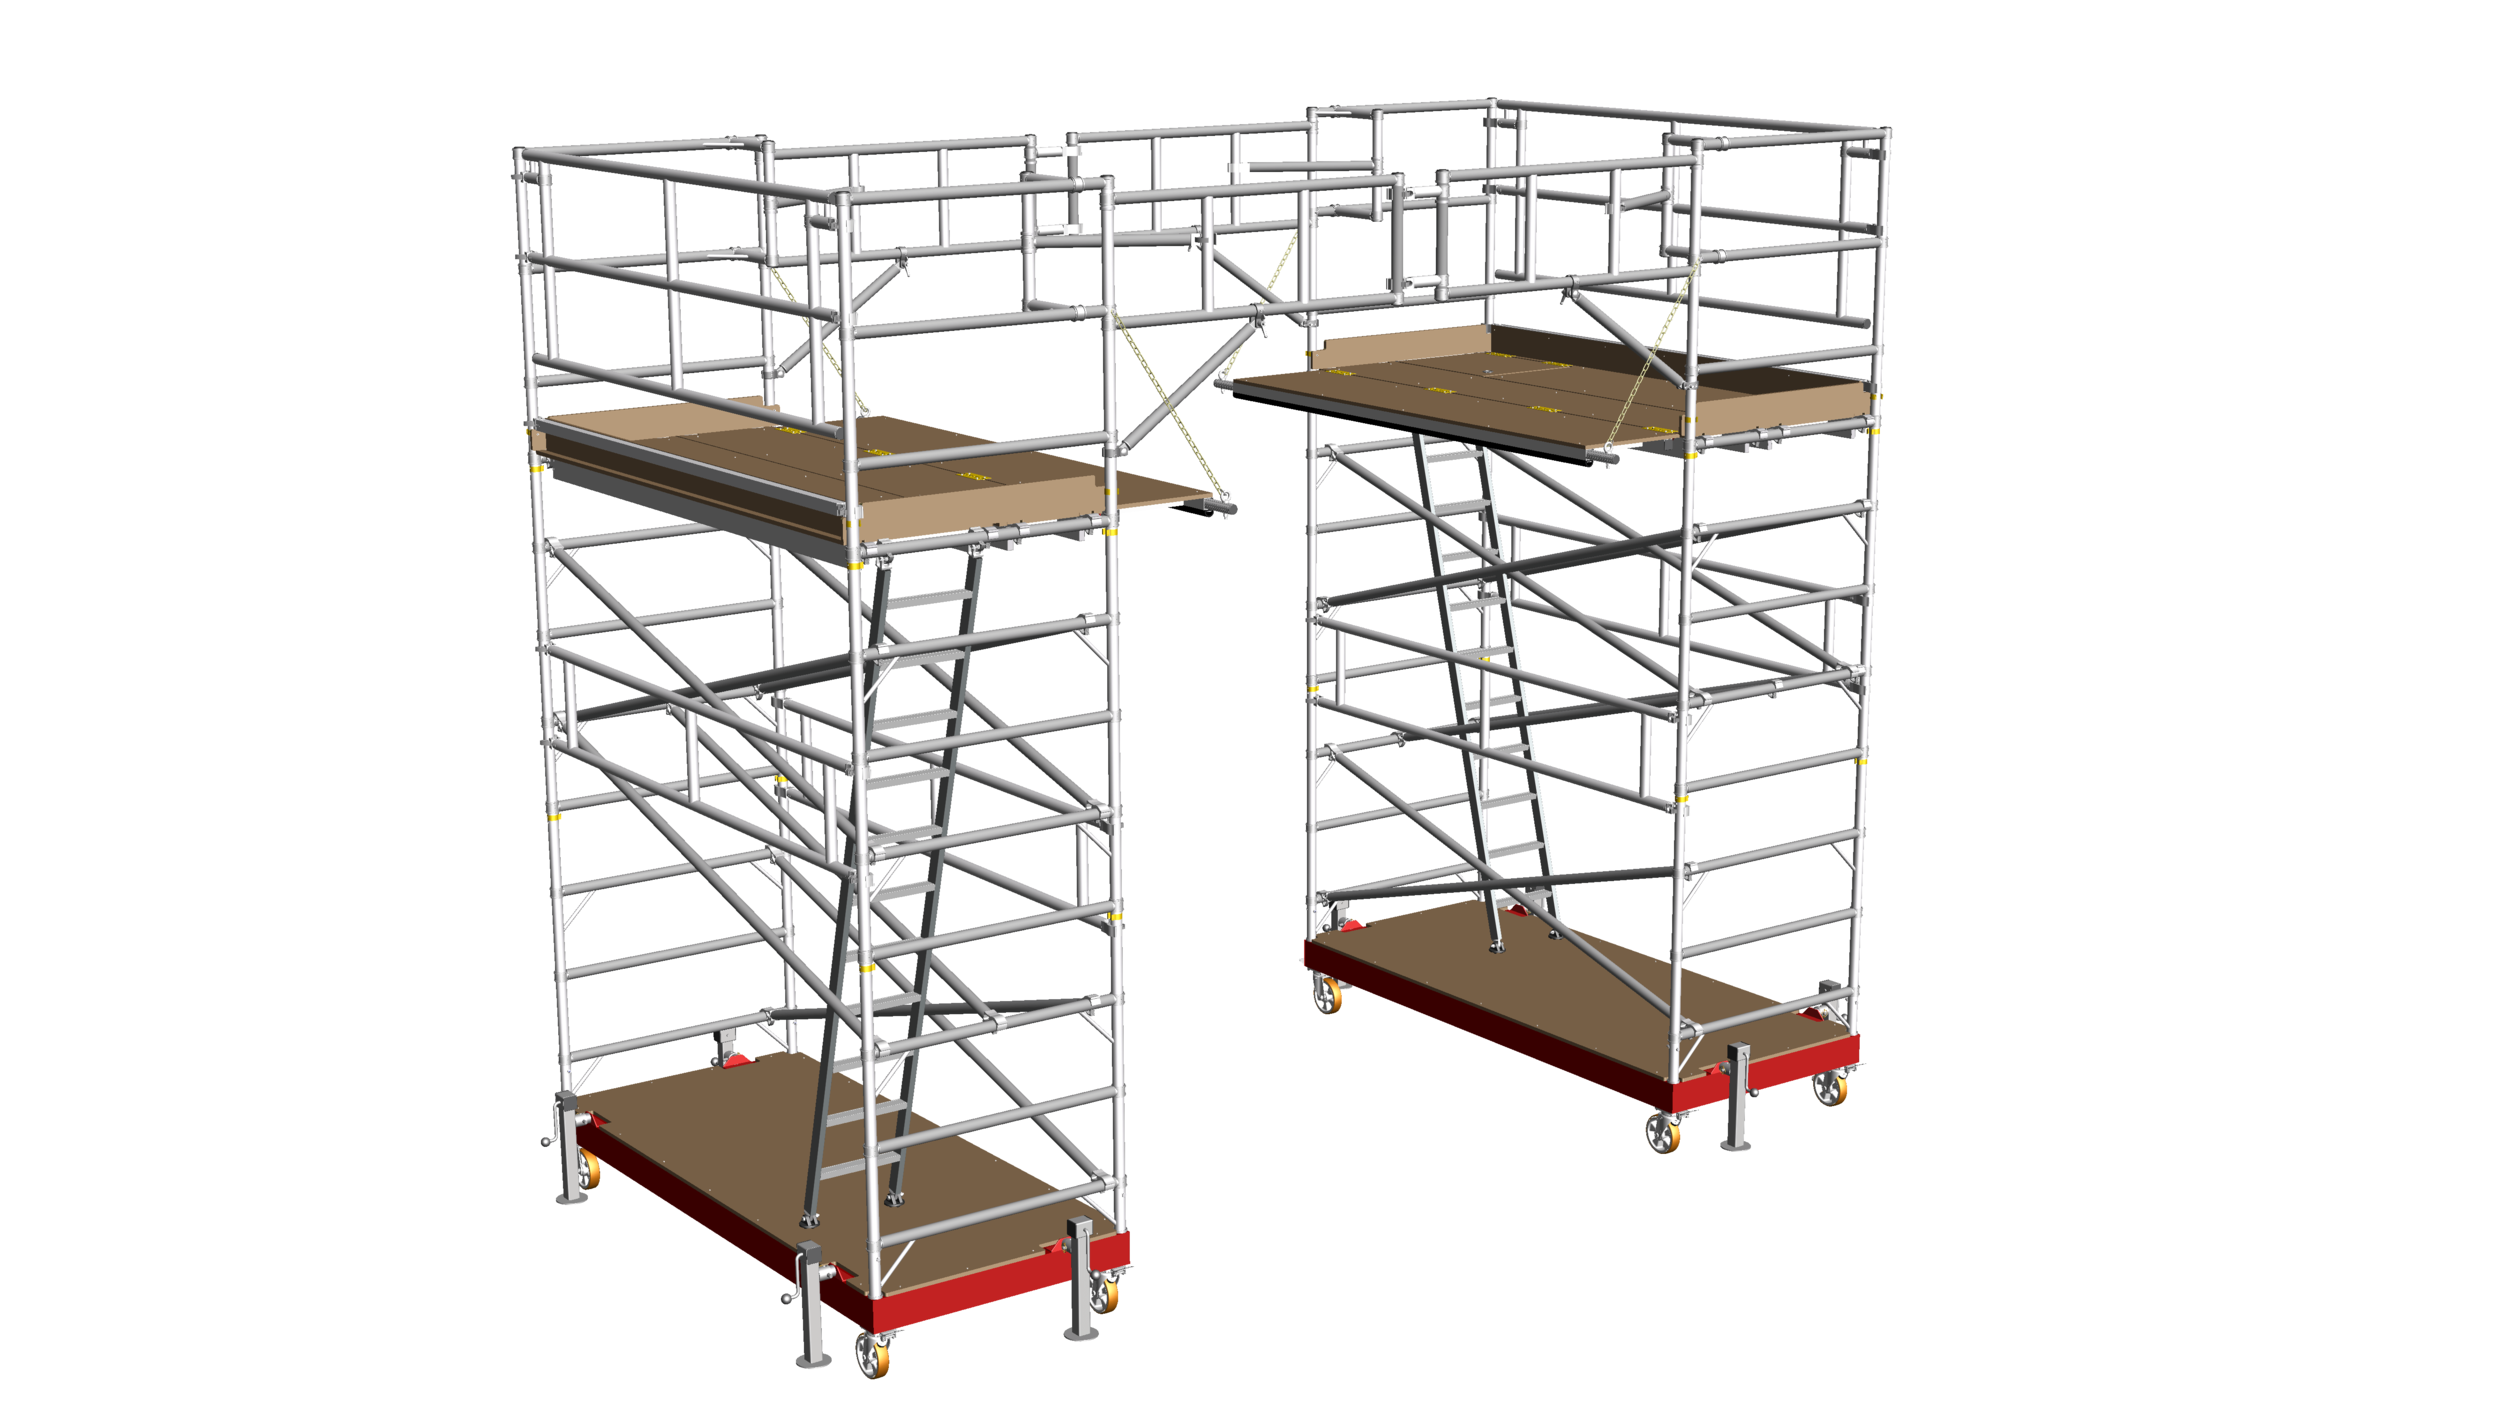 20. Linked train roof access platforms